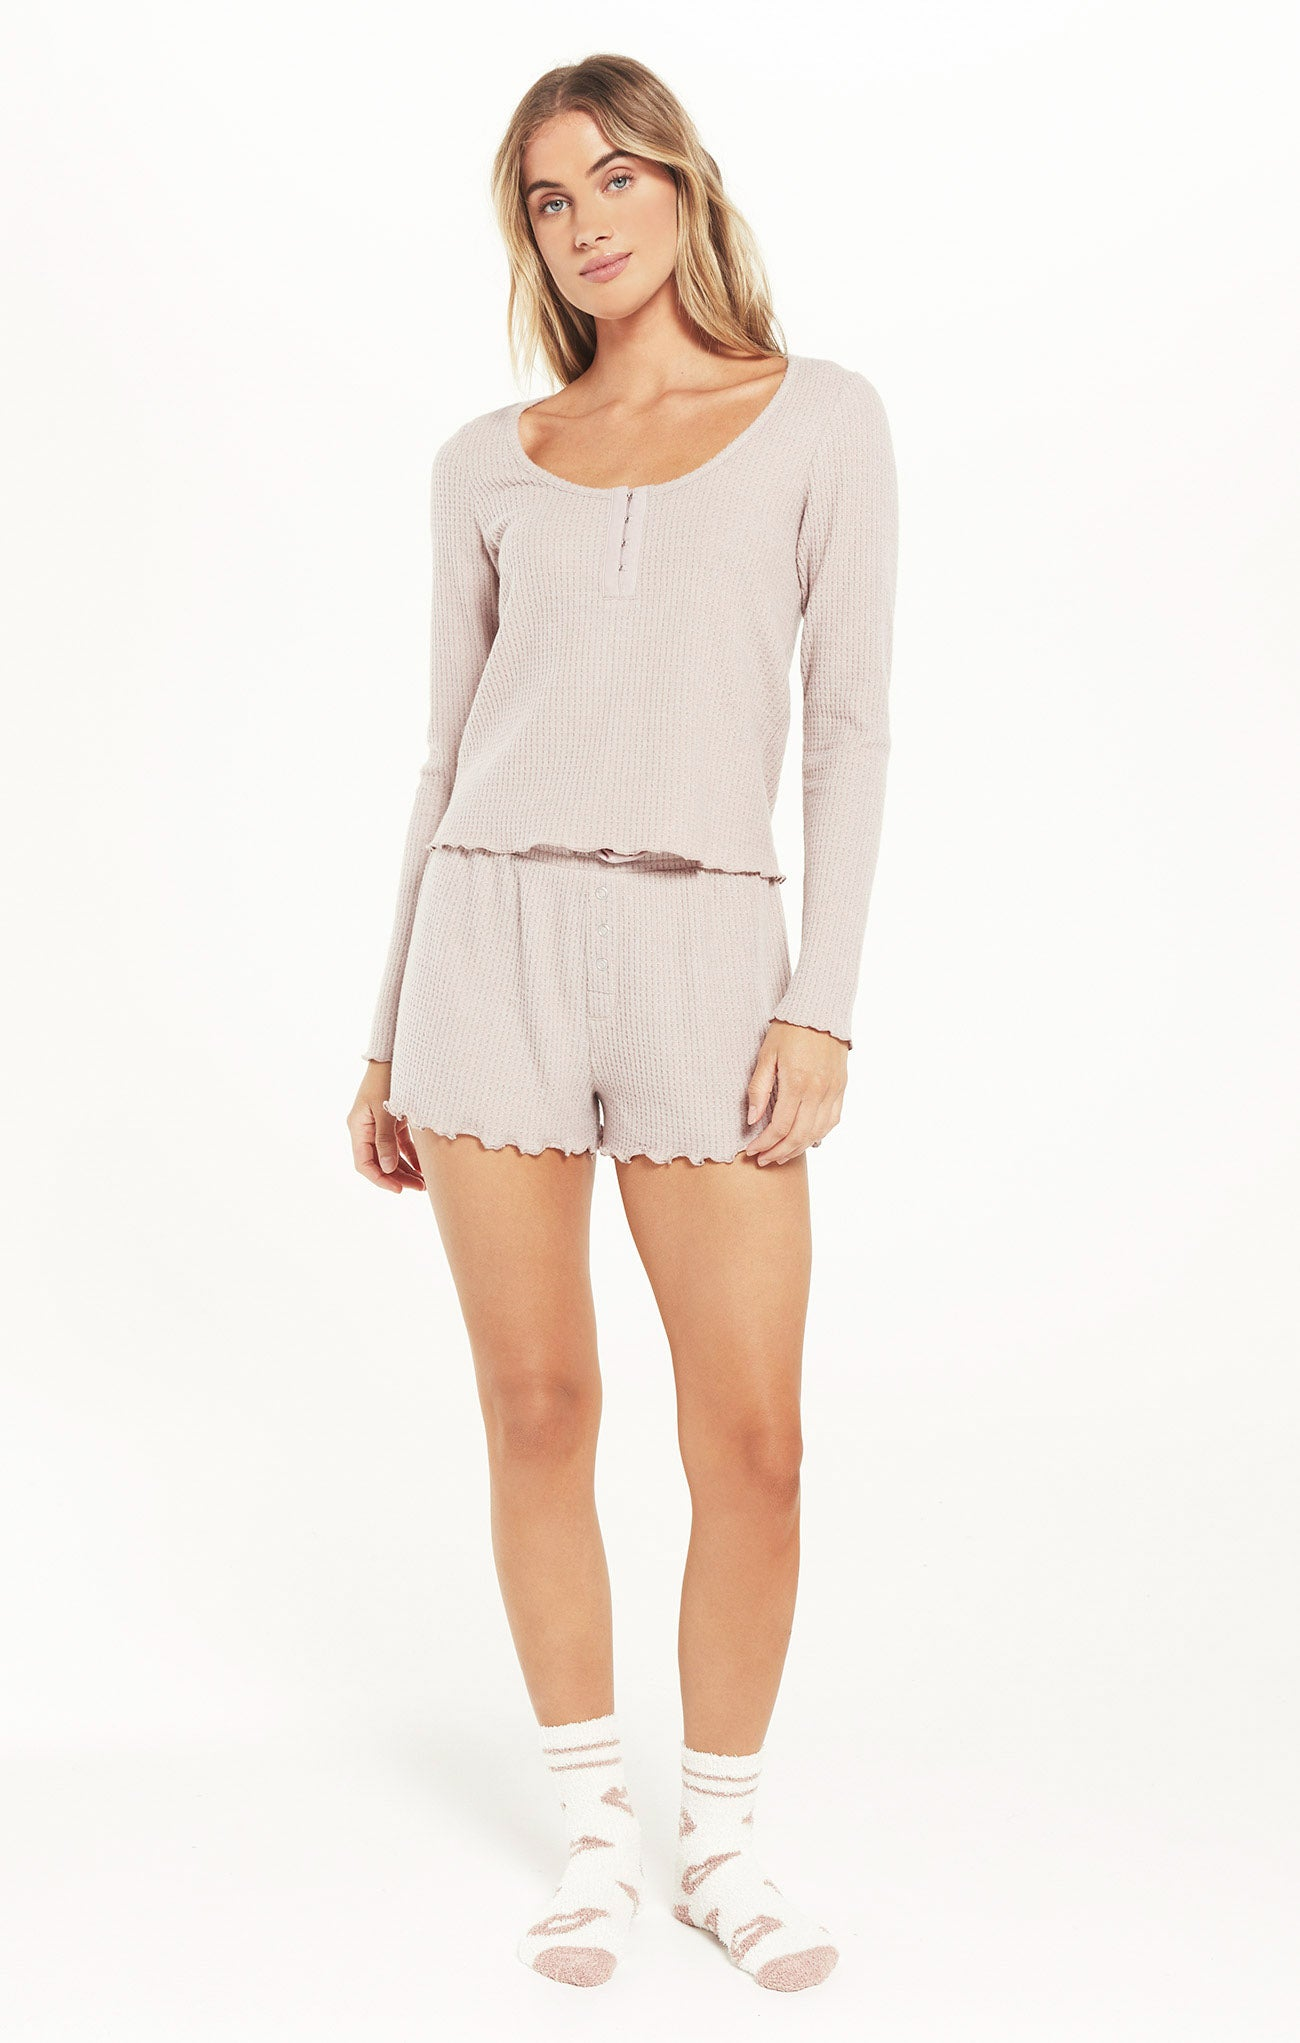 Shorts Frills Thermal Short Dusty Rose